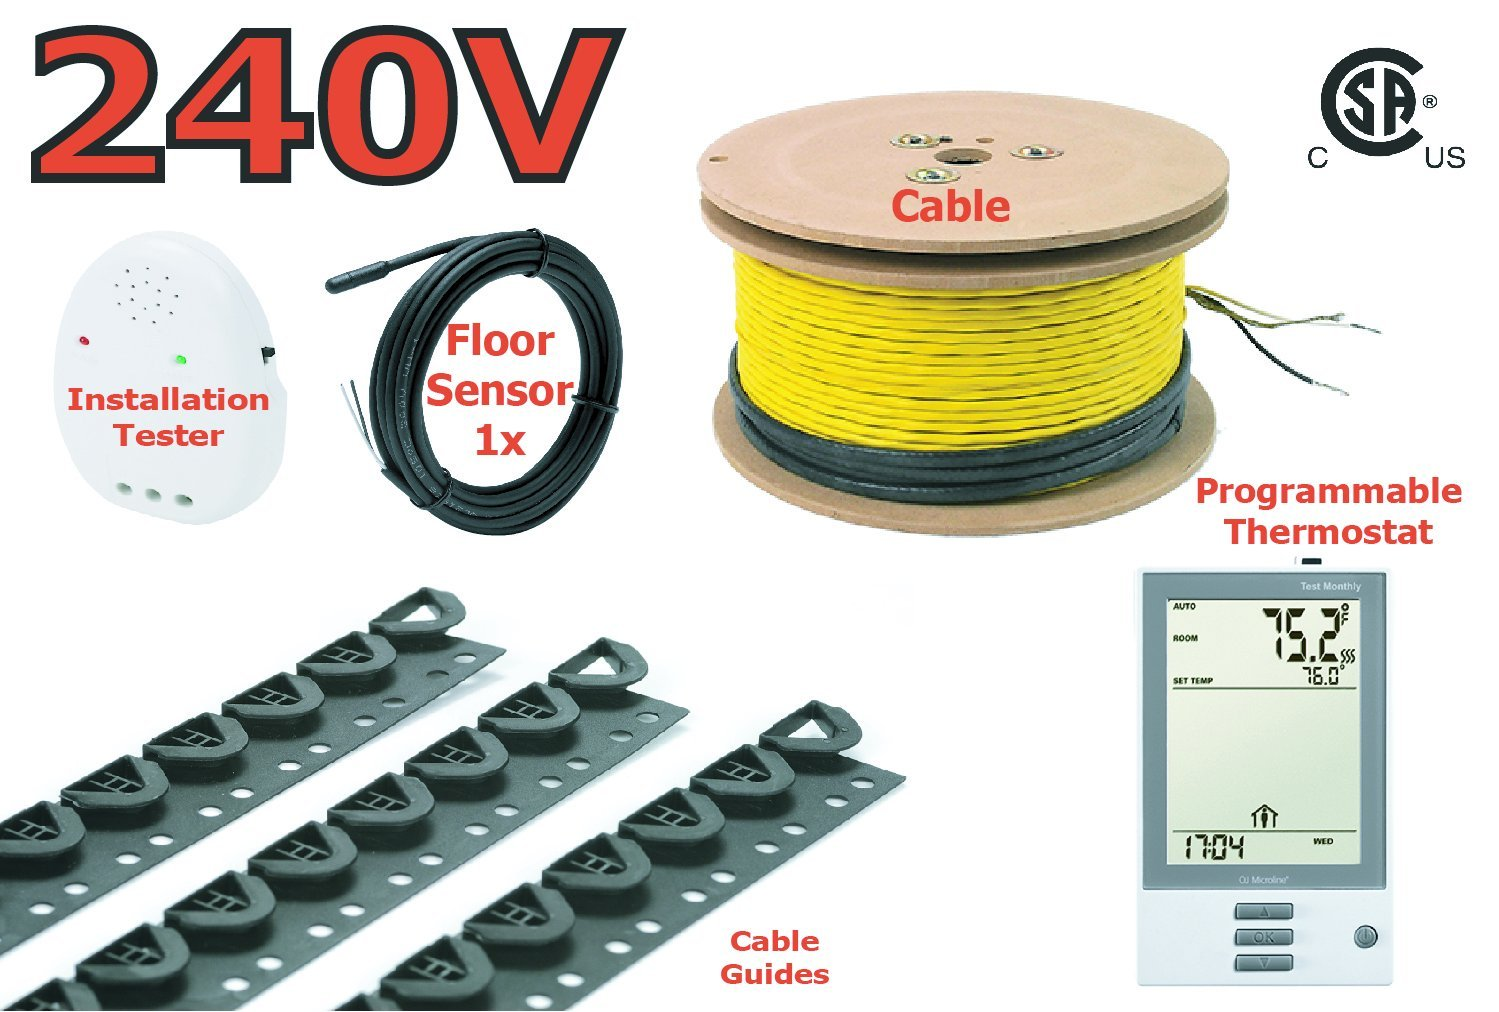 3.7W 240V Electric Tile Radiant Floor Heating Cable with UDG-4999 Programmable Thermostat Floor Heating System 39 Sq.Ft.